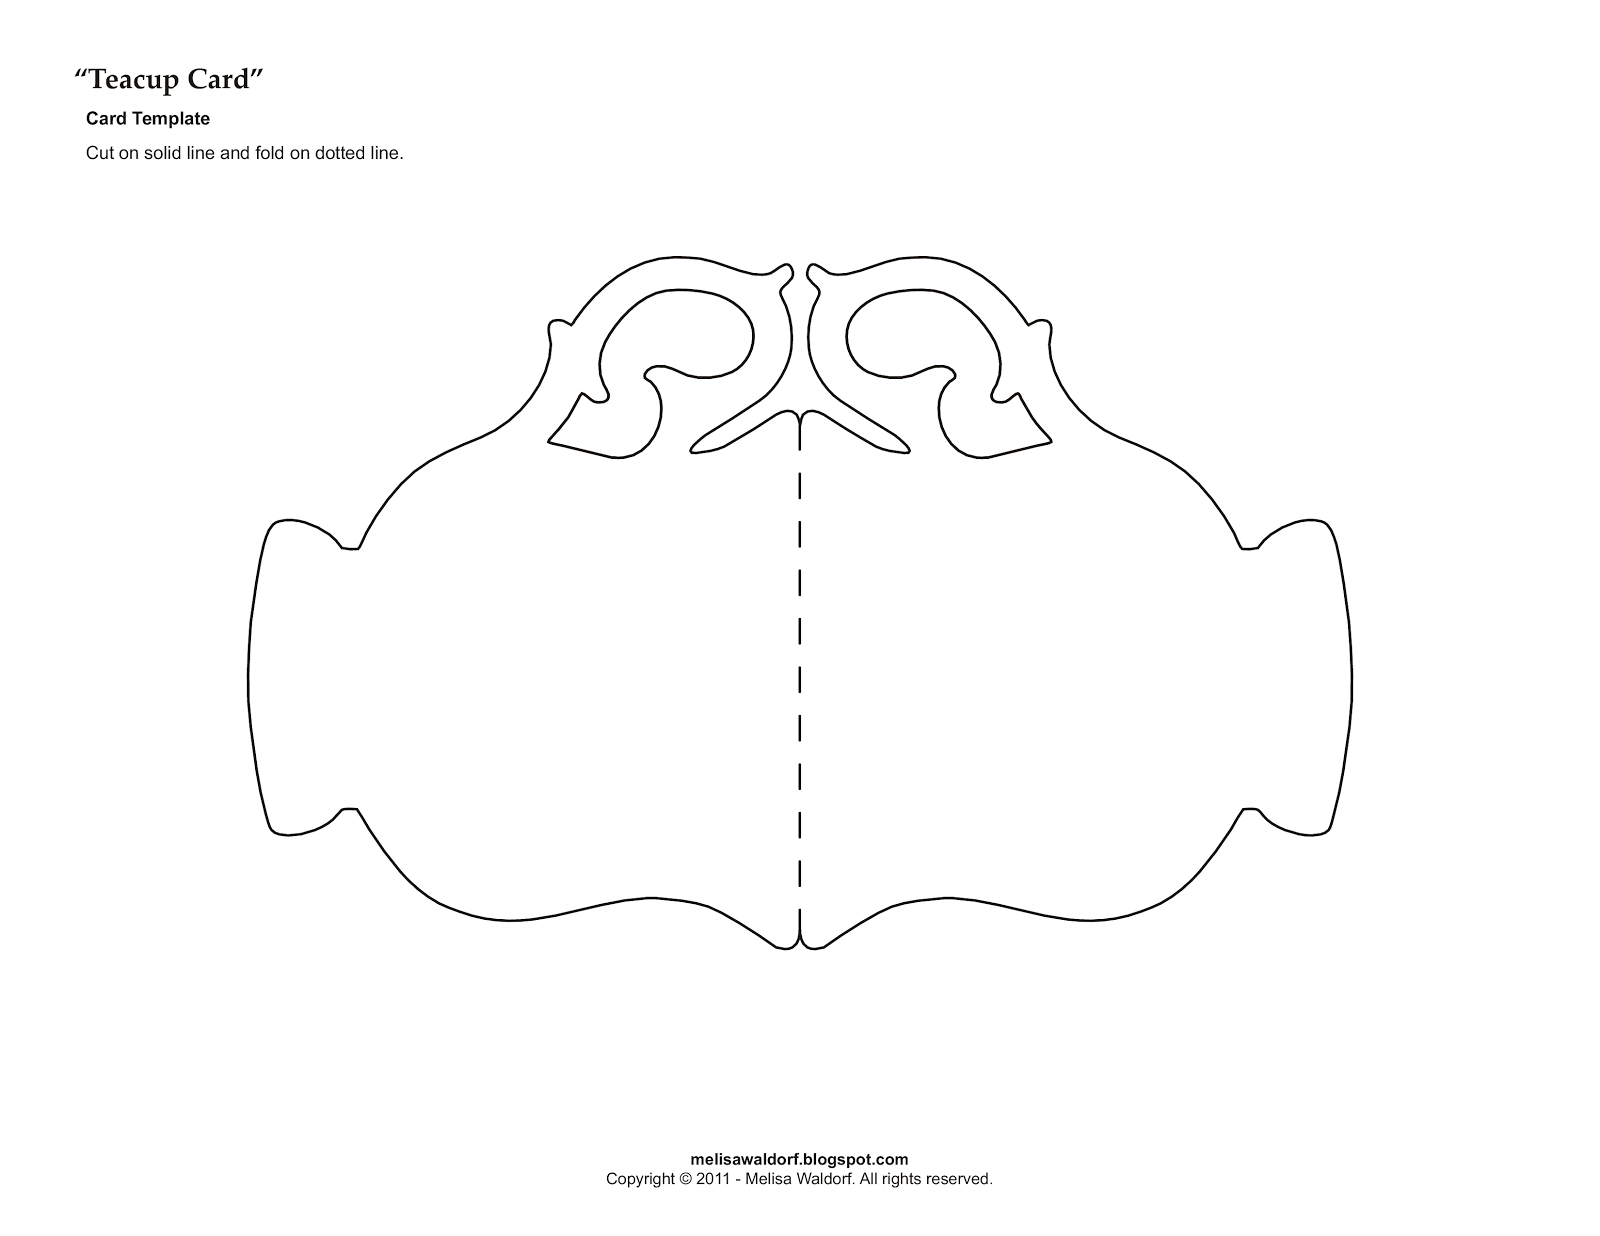 template for tea cup teacup magnolia projects to try